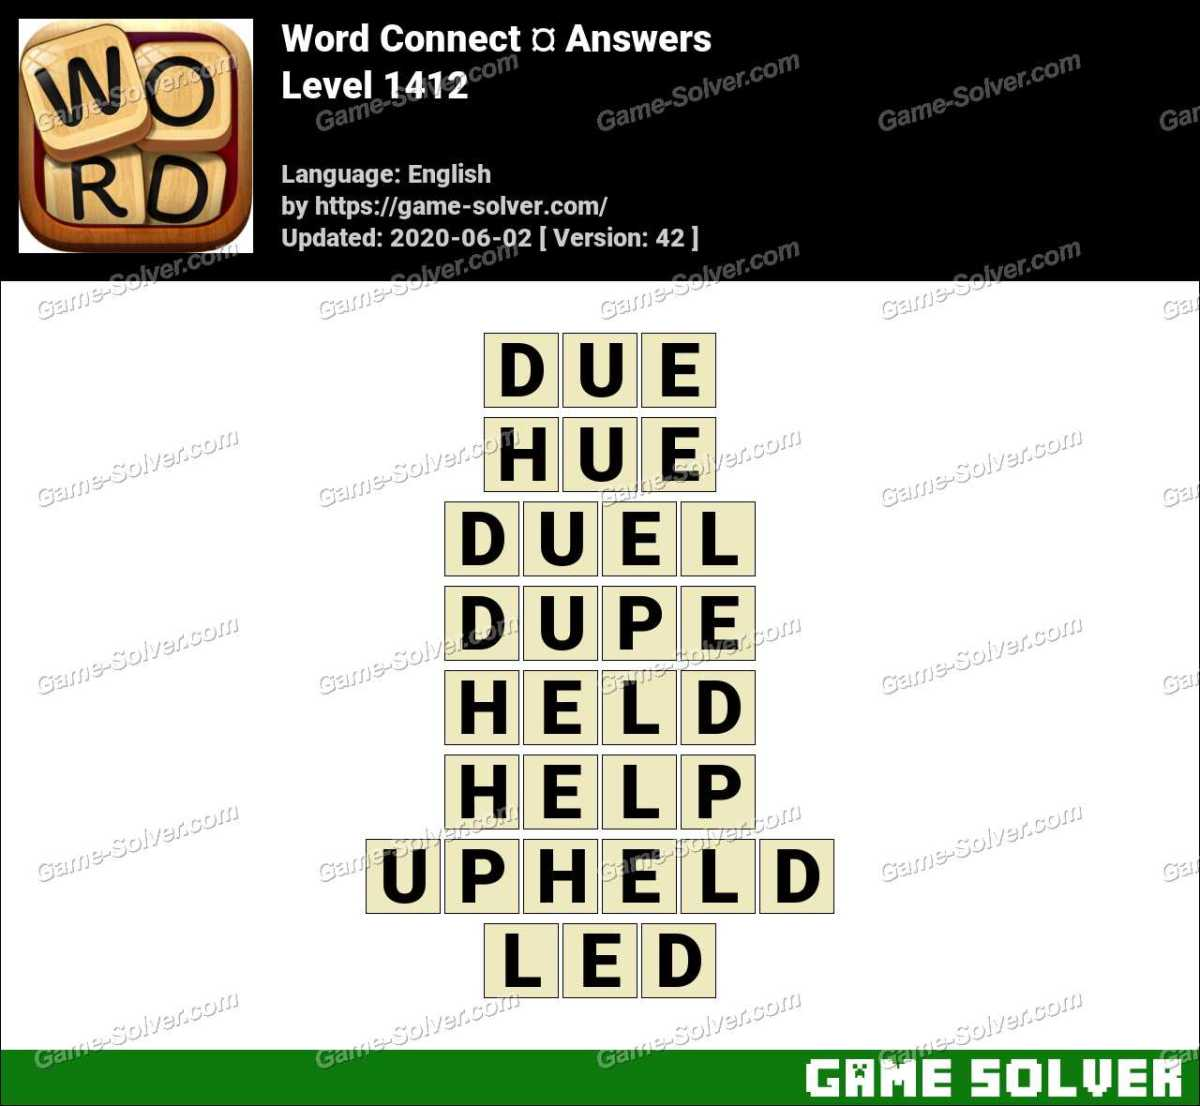 Word Connect Level 1412 Answers